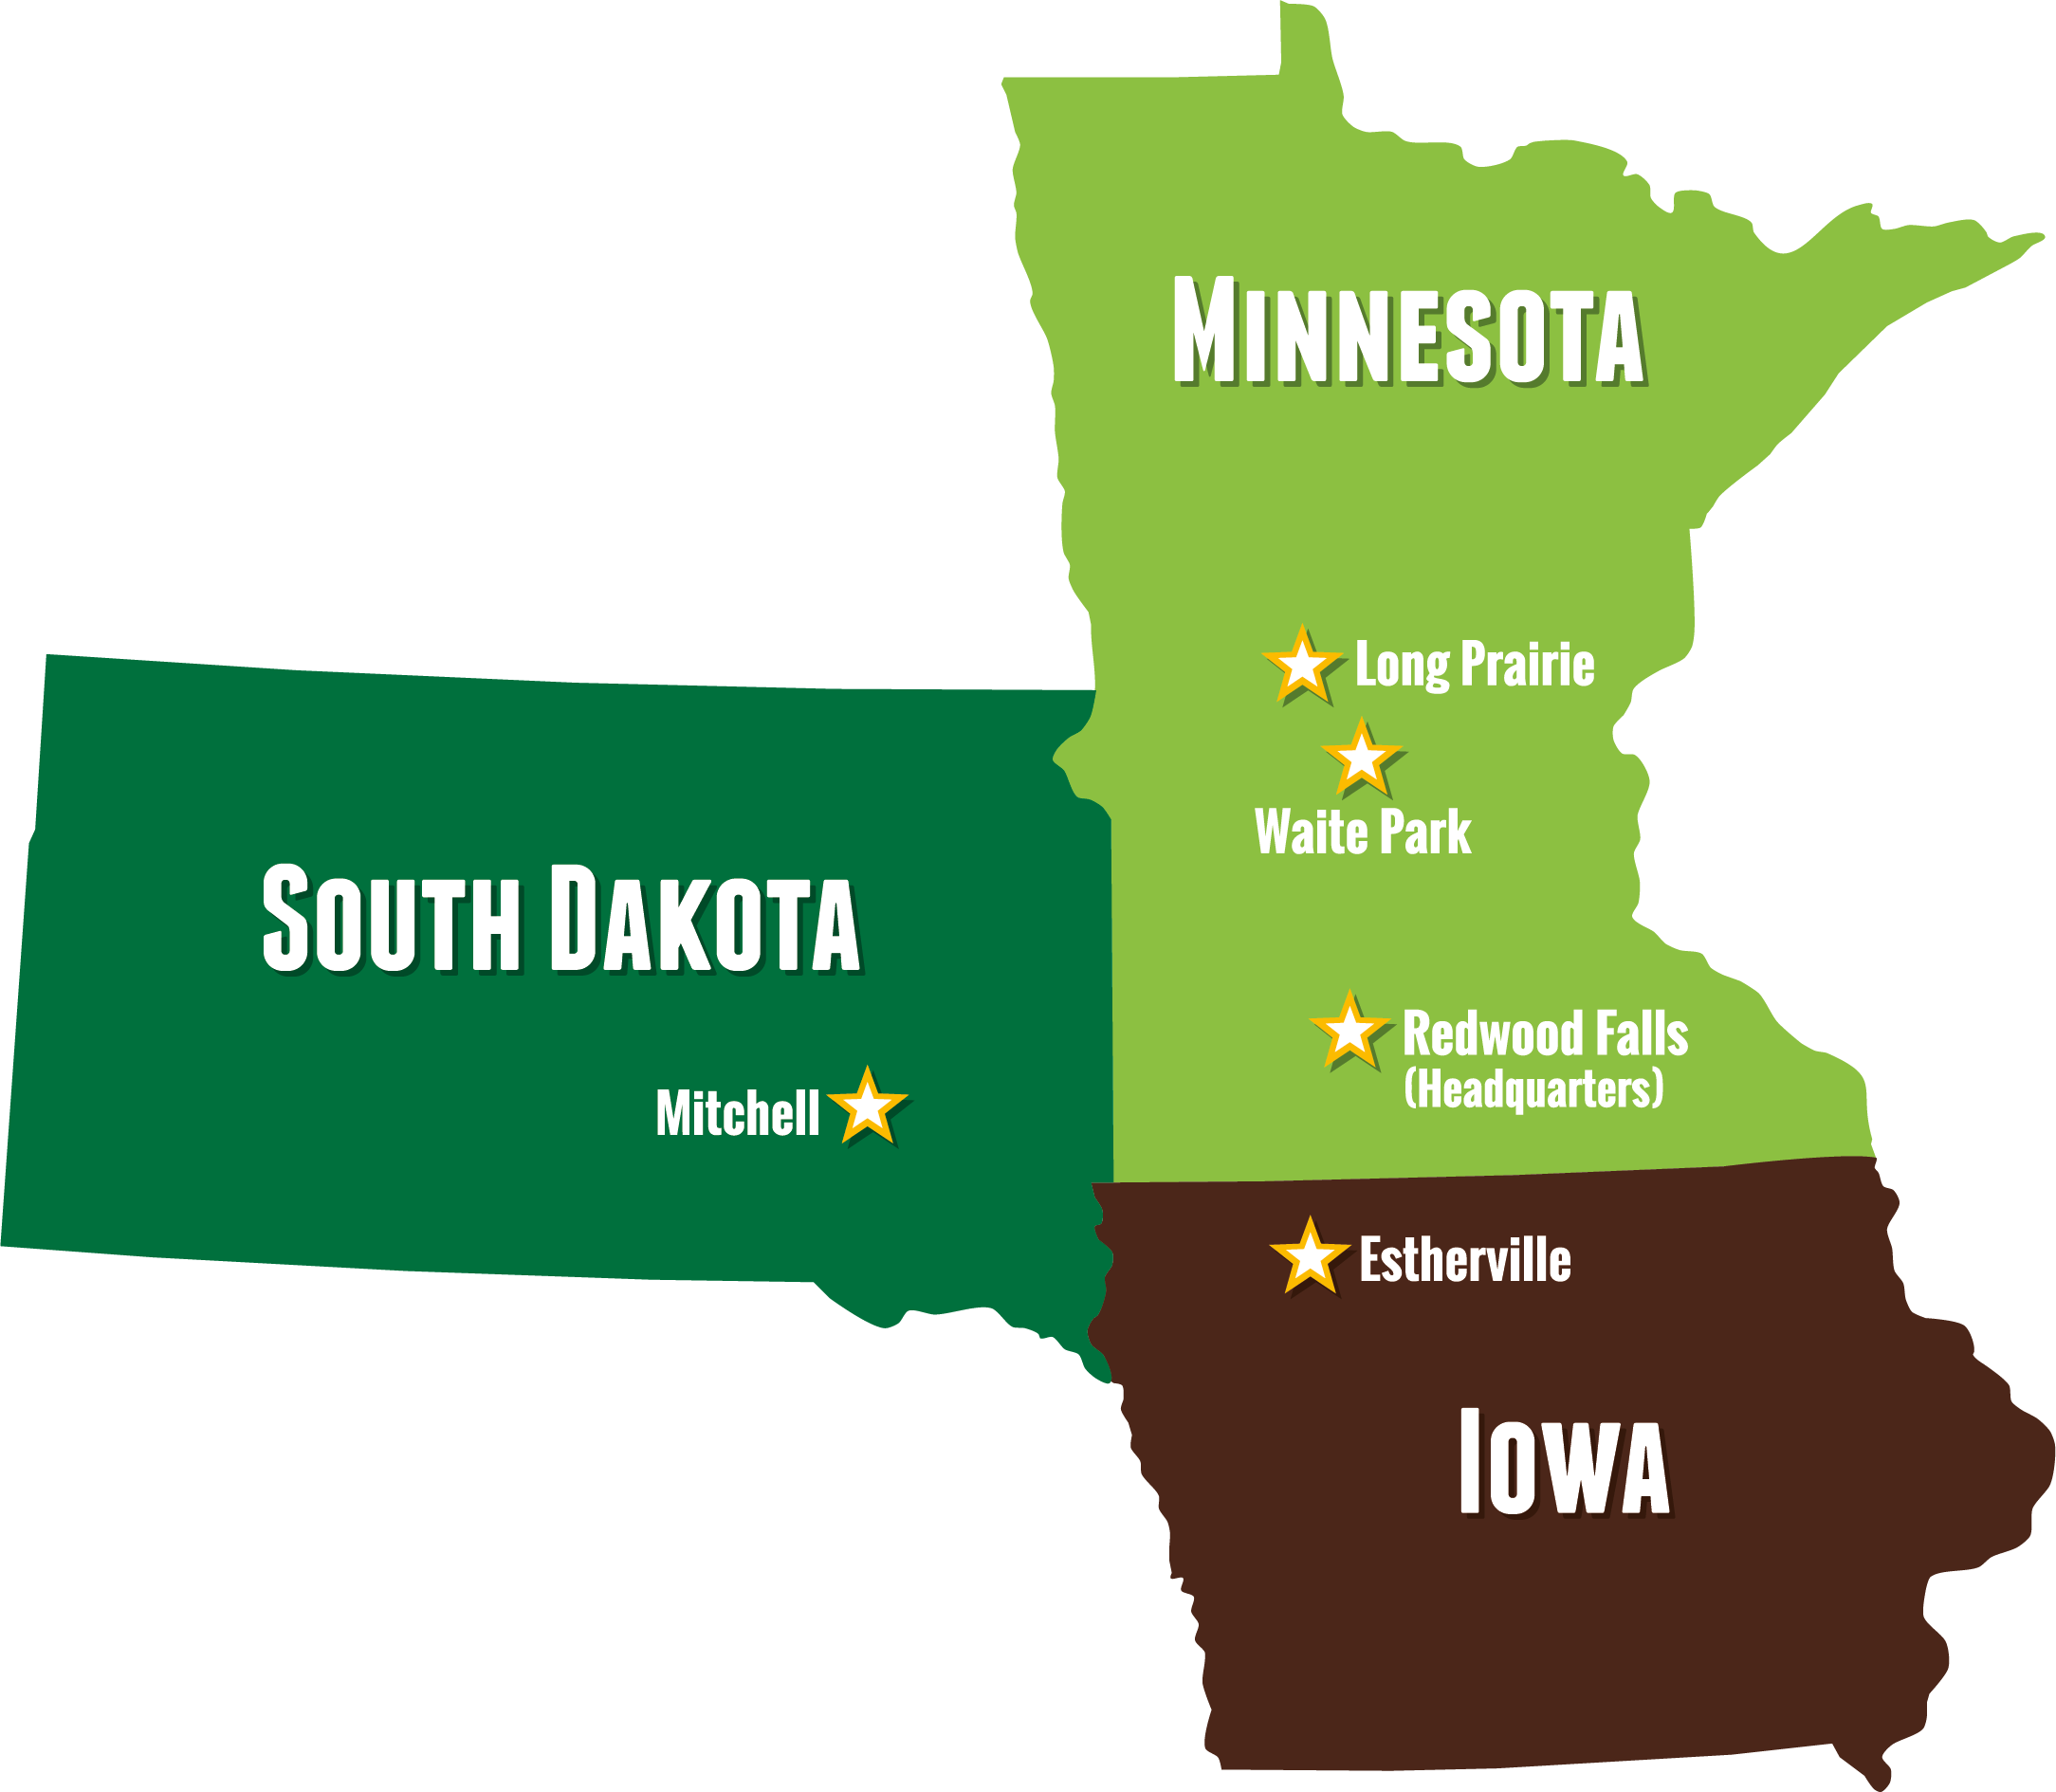 Minnesota, Iowa, North Dakota and South Dakota locations